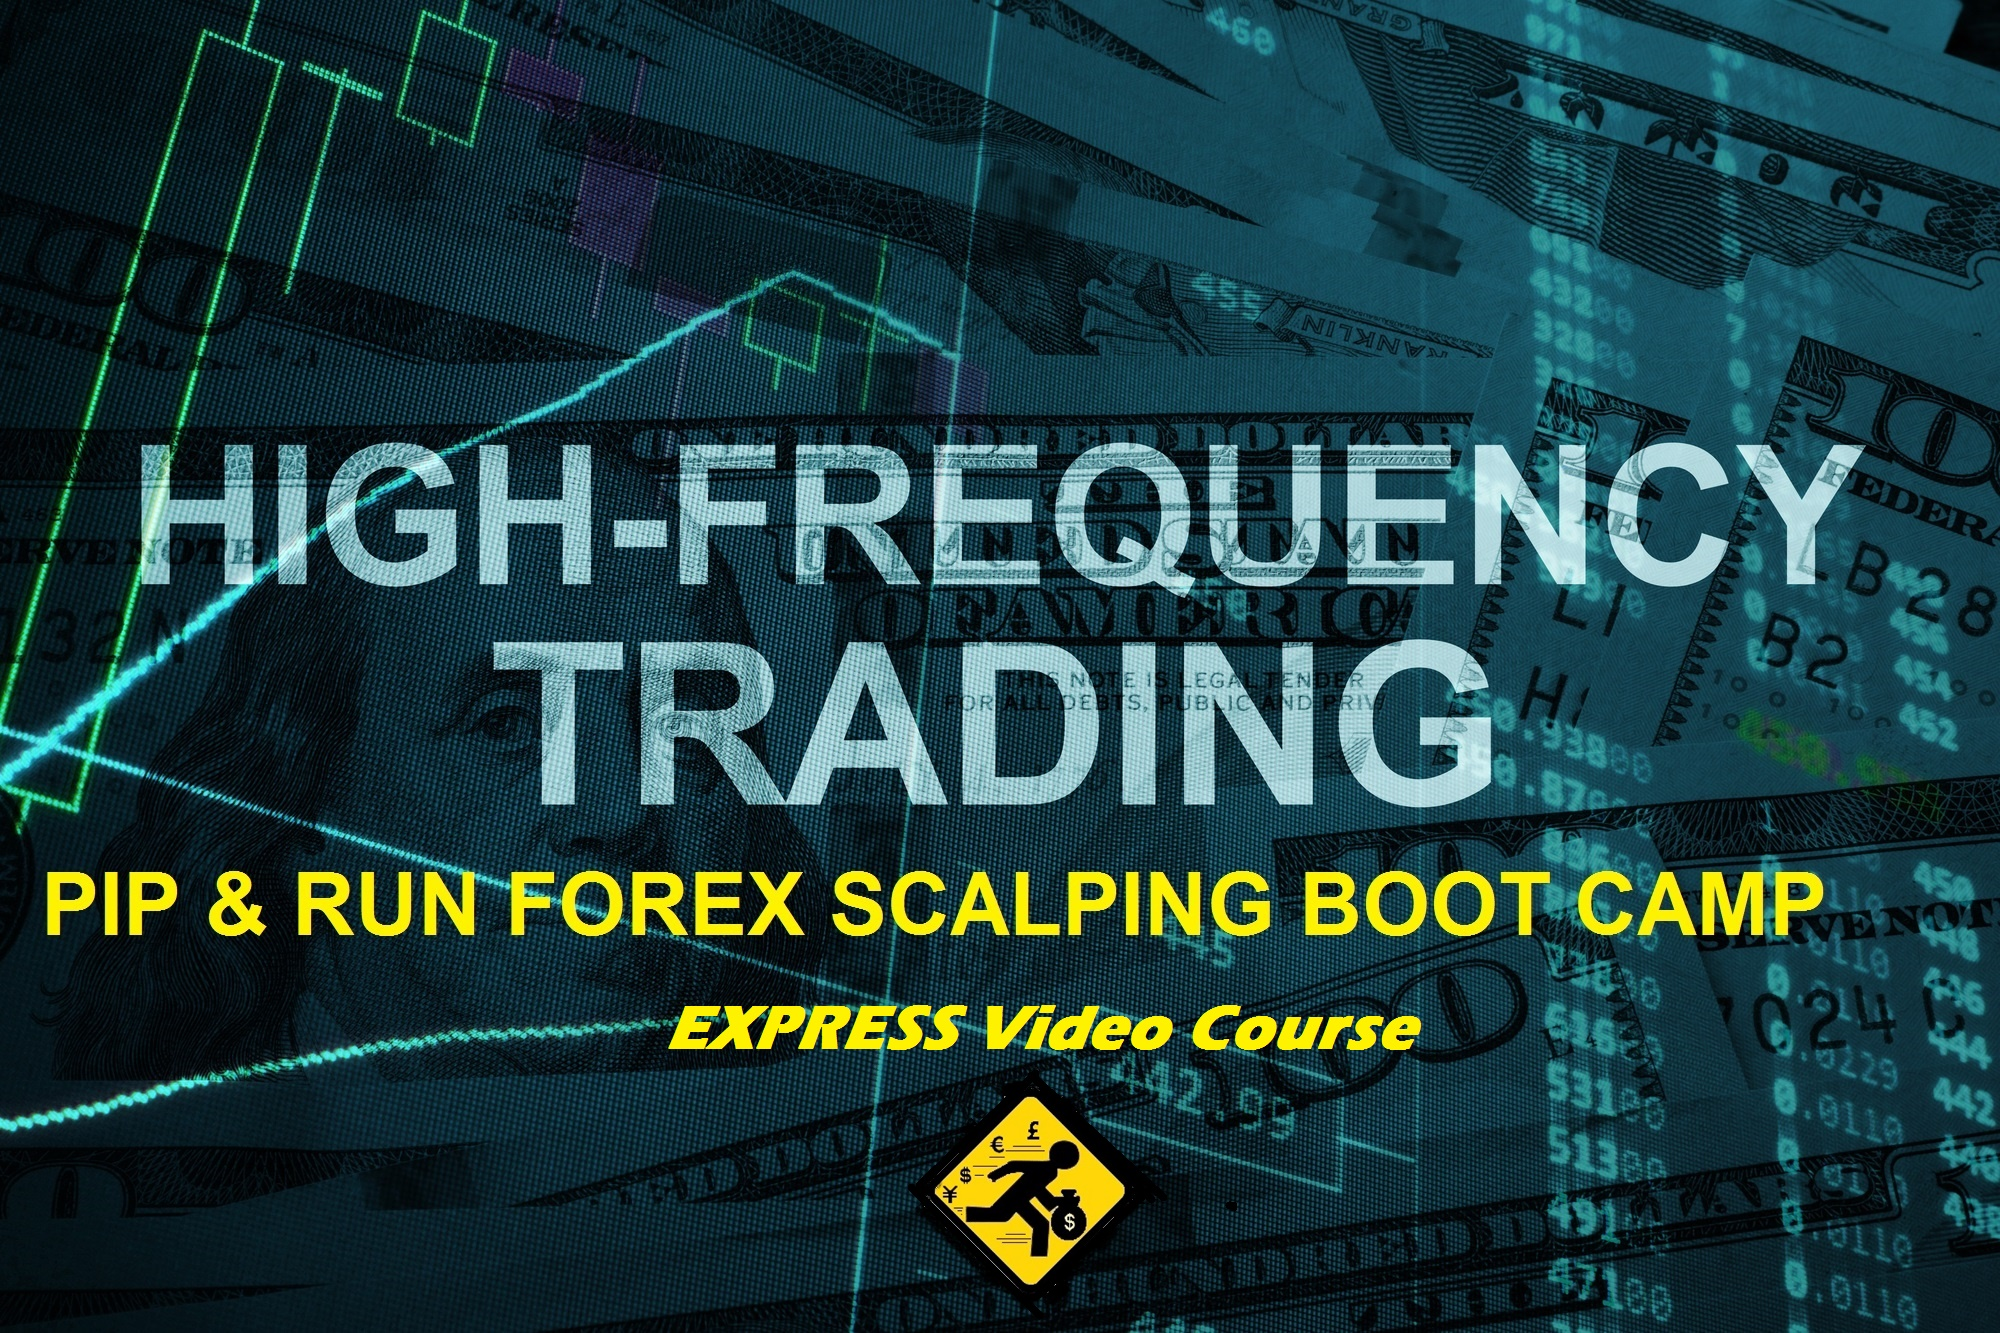 FX-Scalping-Boot-Camp-Image (1)